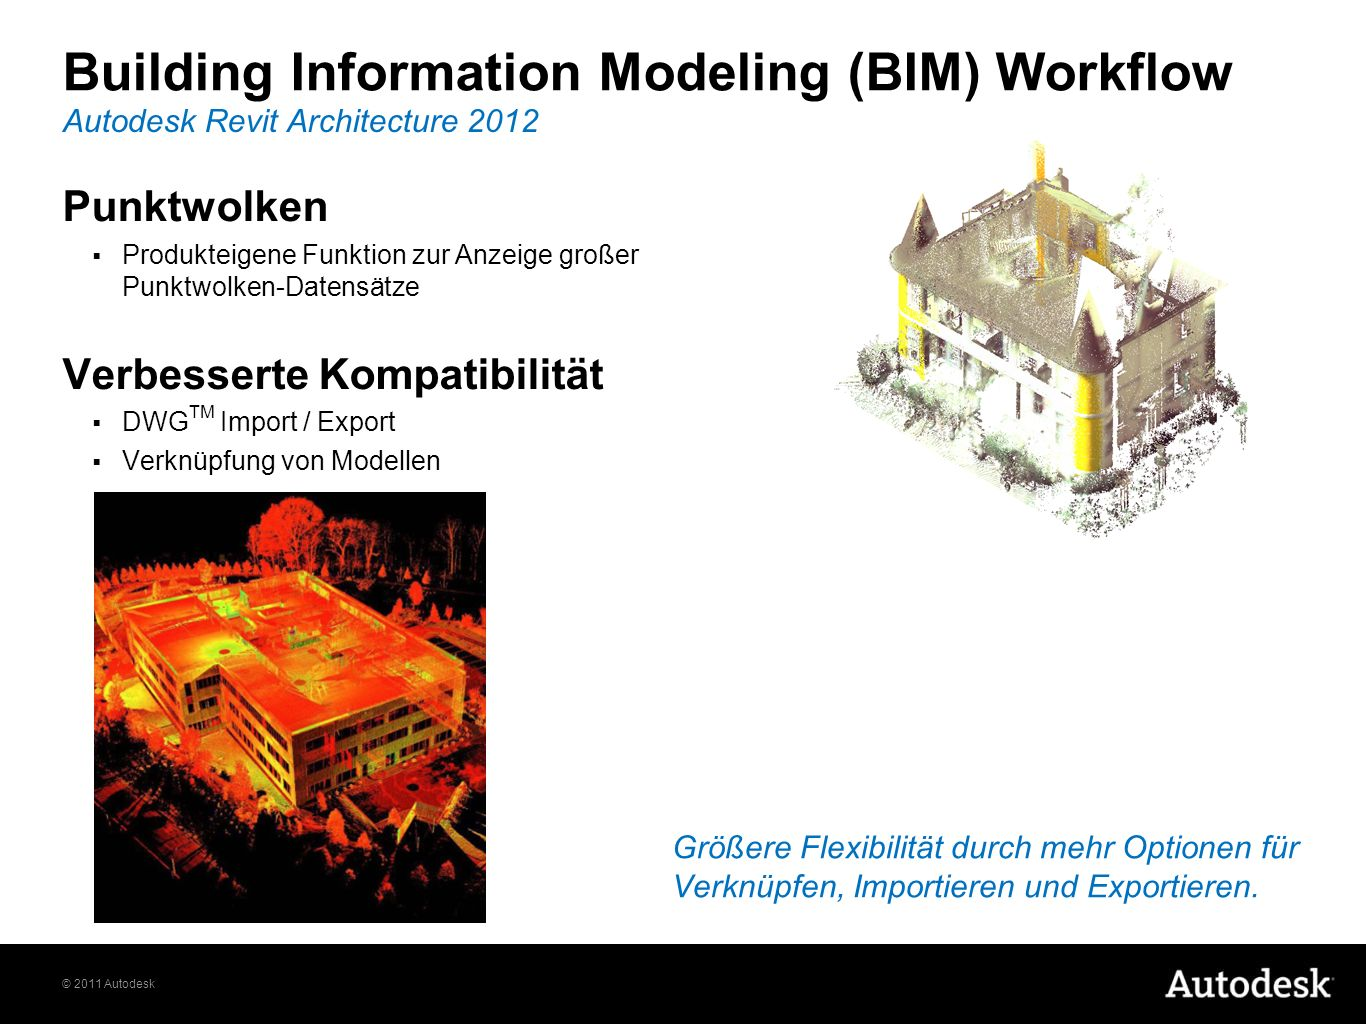 Building Information Modeling (BIM) Workflow